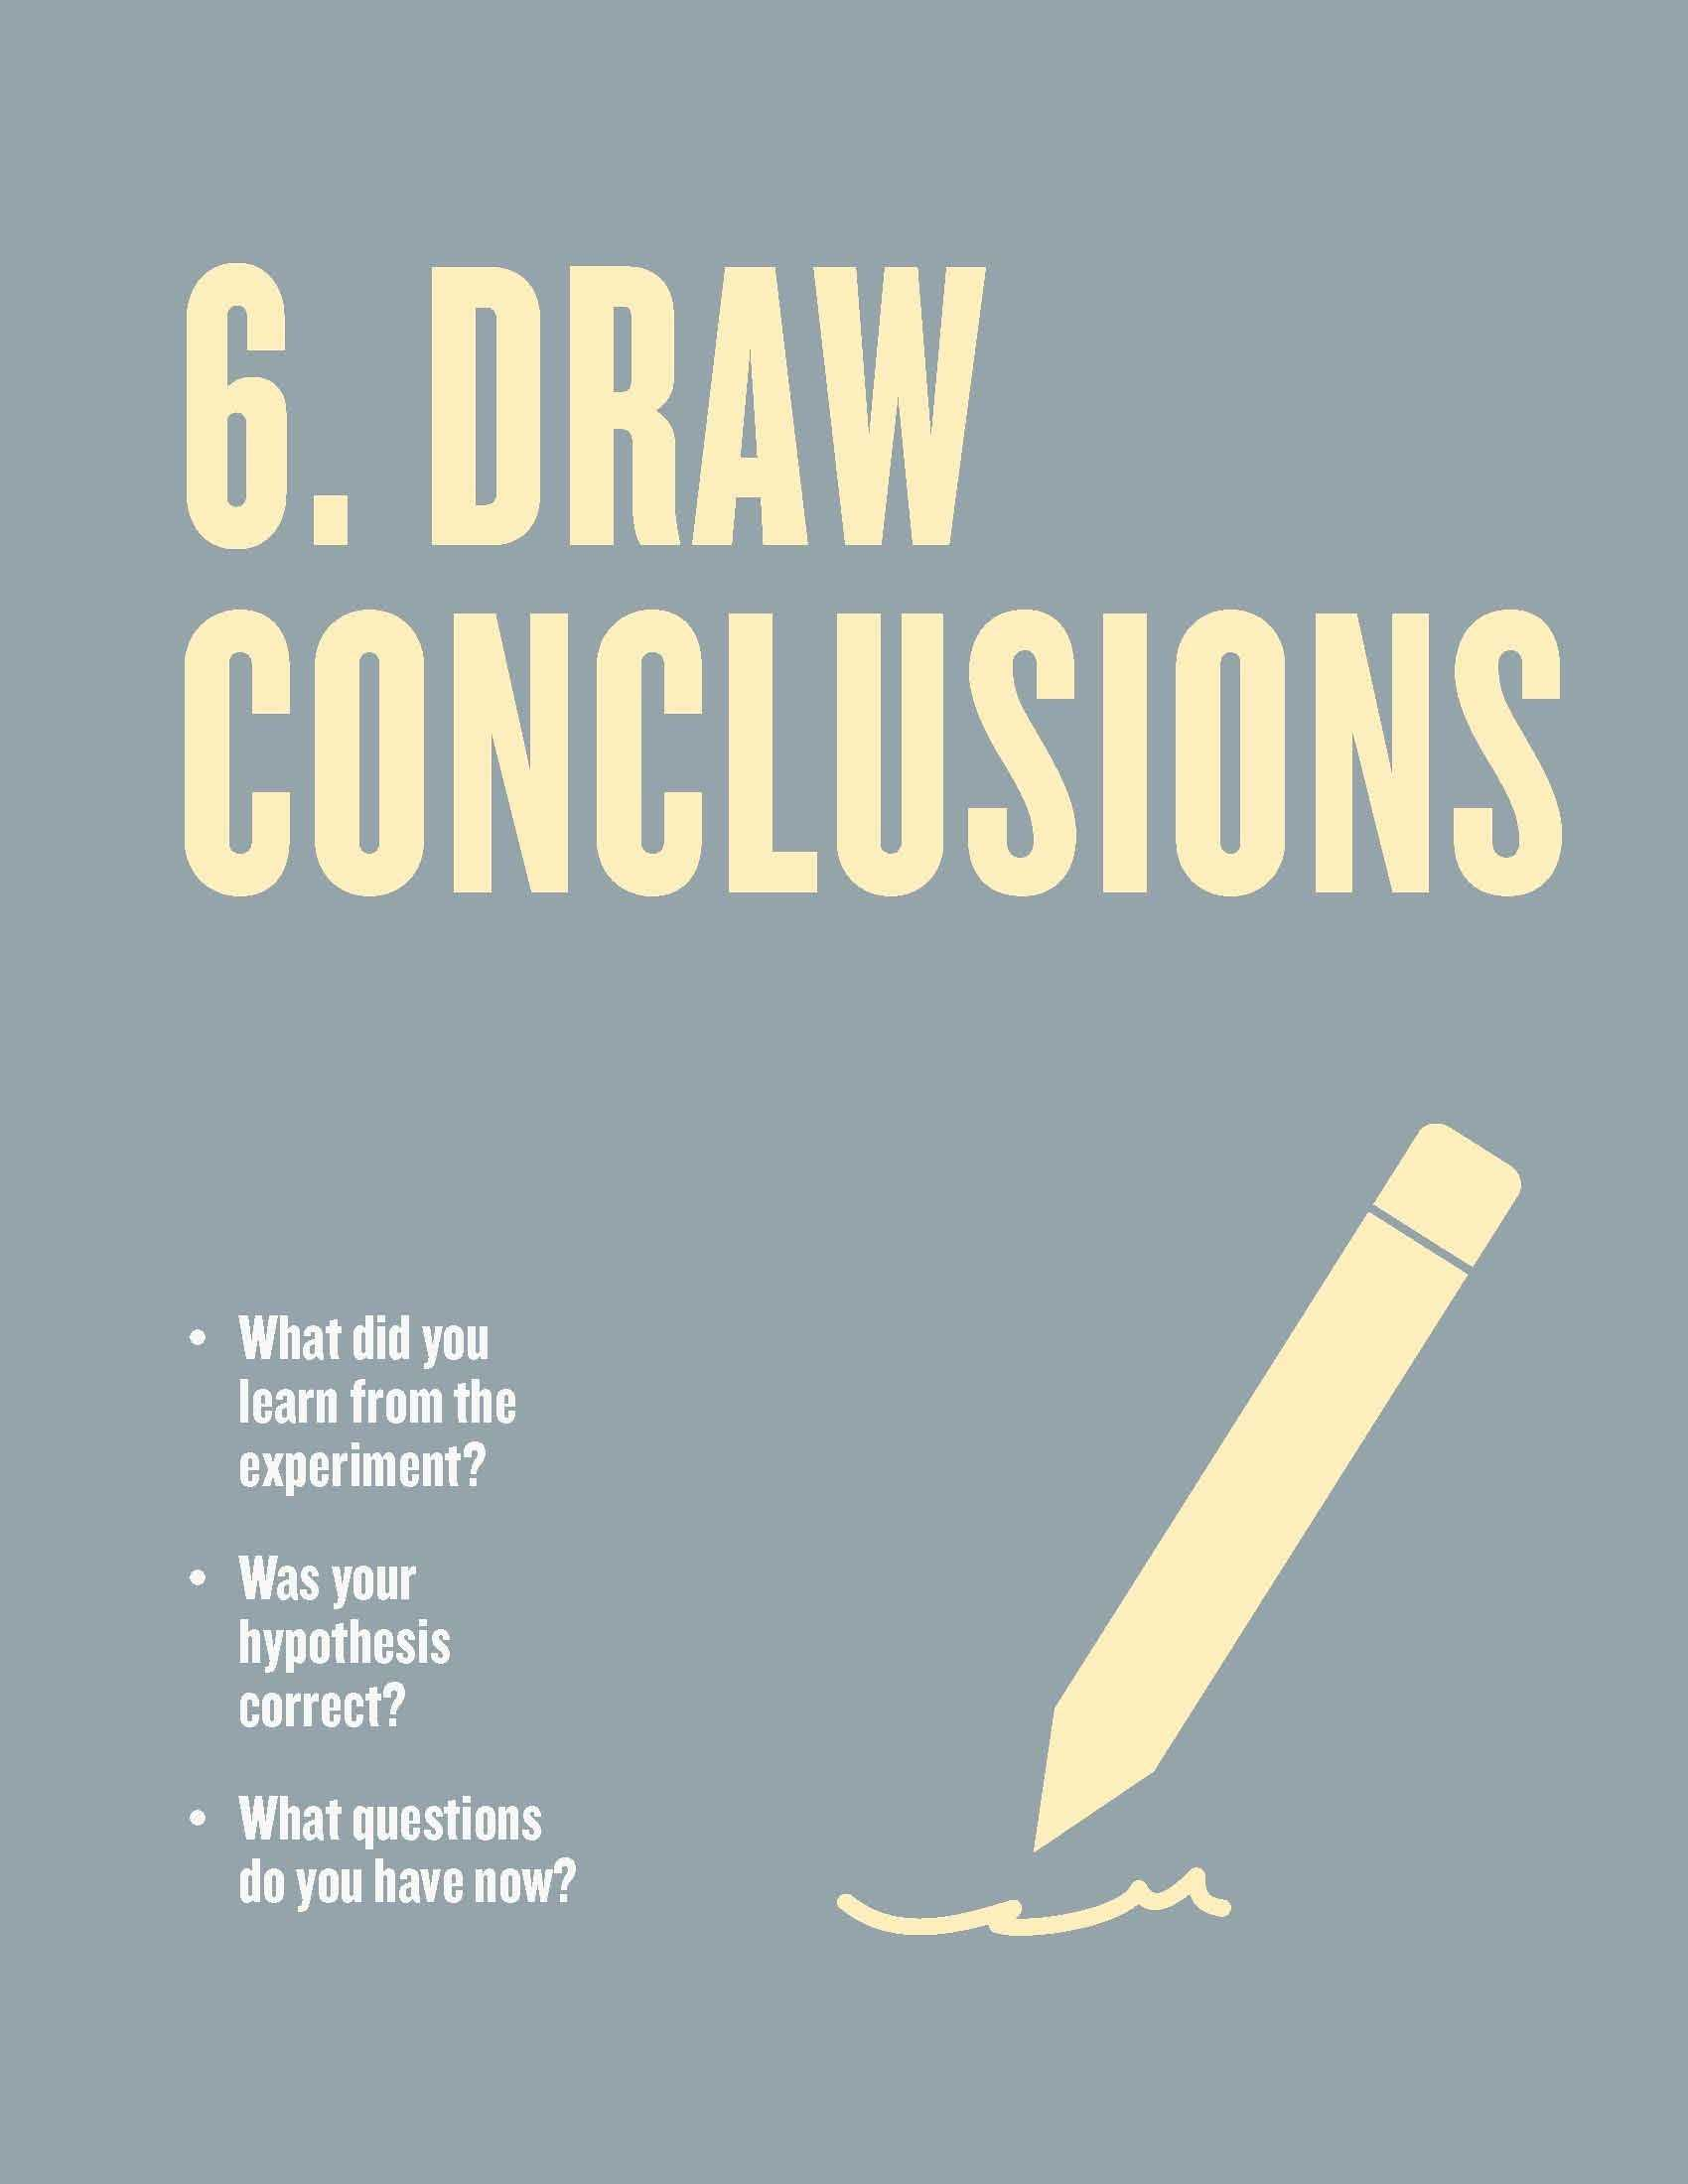 Scientific Inquiry Worksheet Answers Also Free Scientific Method Posters for the Classroom Step 6 Draw